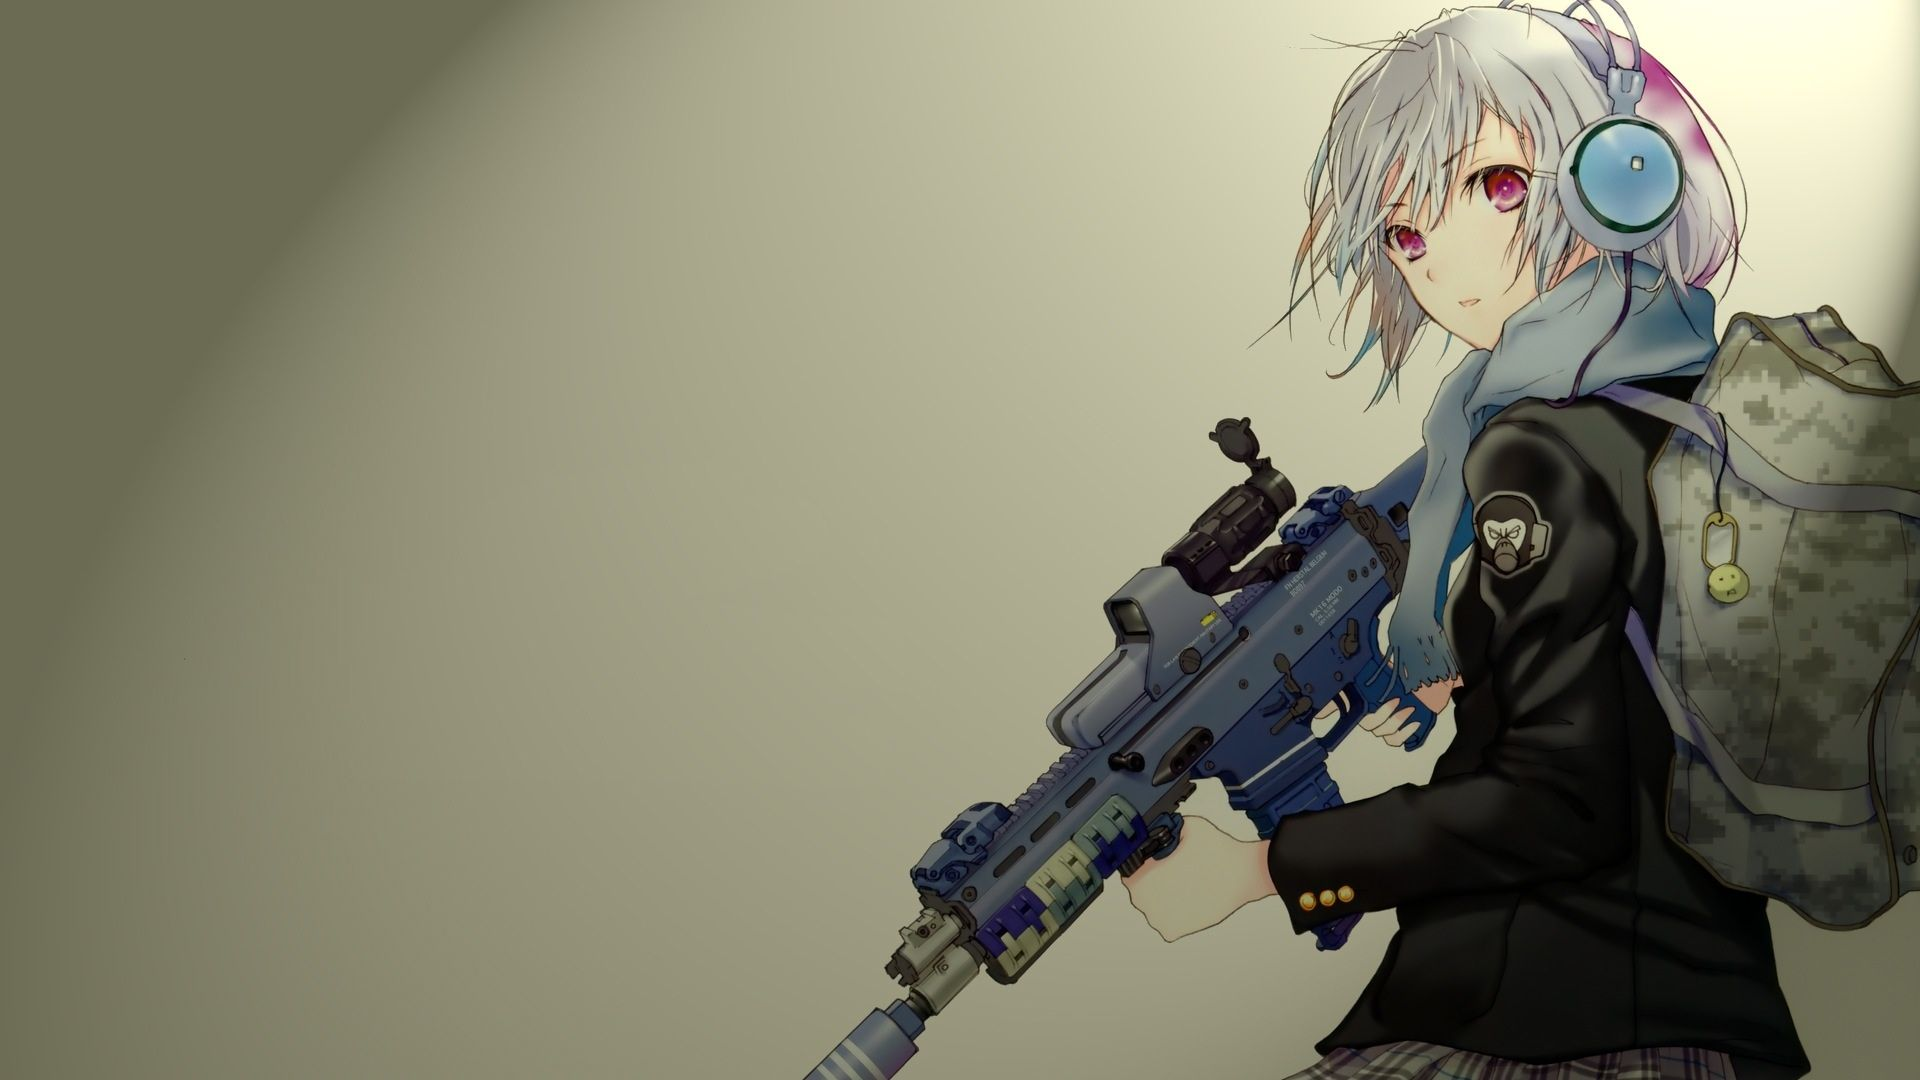 Anime Girls With Guns Wallpaper 4 Jpg 1 920 1 080 Pixels Wallpapers Hd Anime Arte Anime Animes Wallpapers